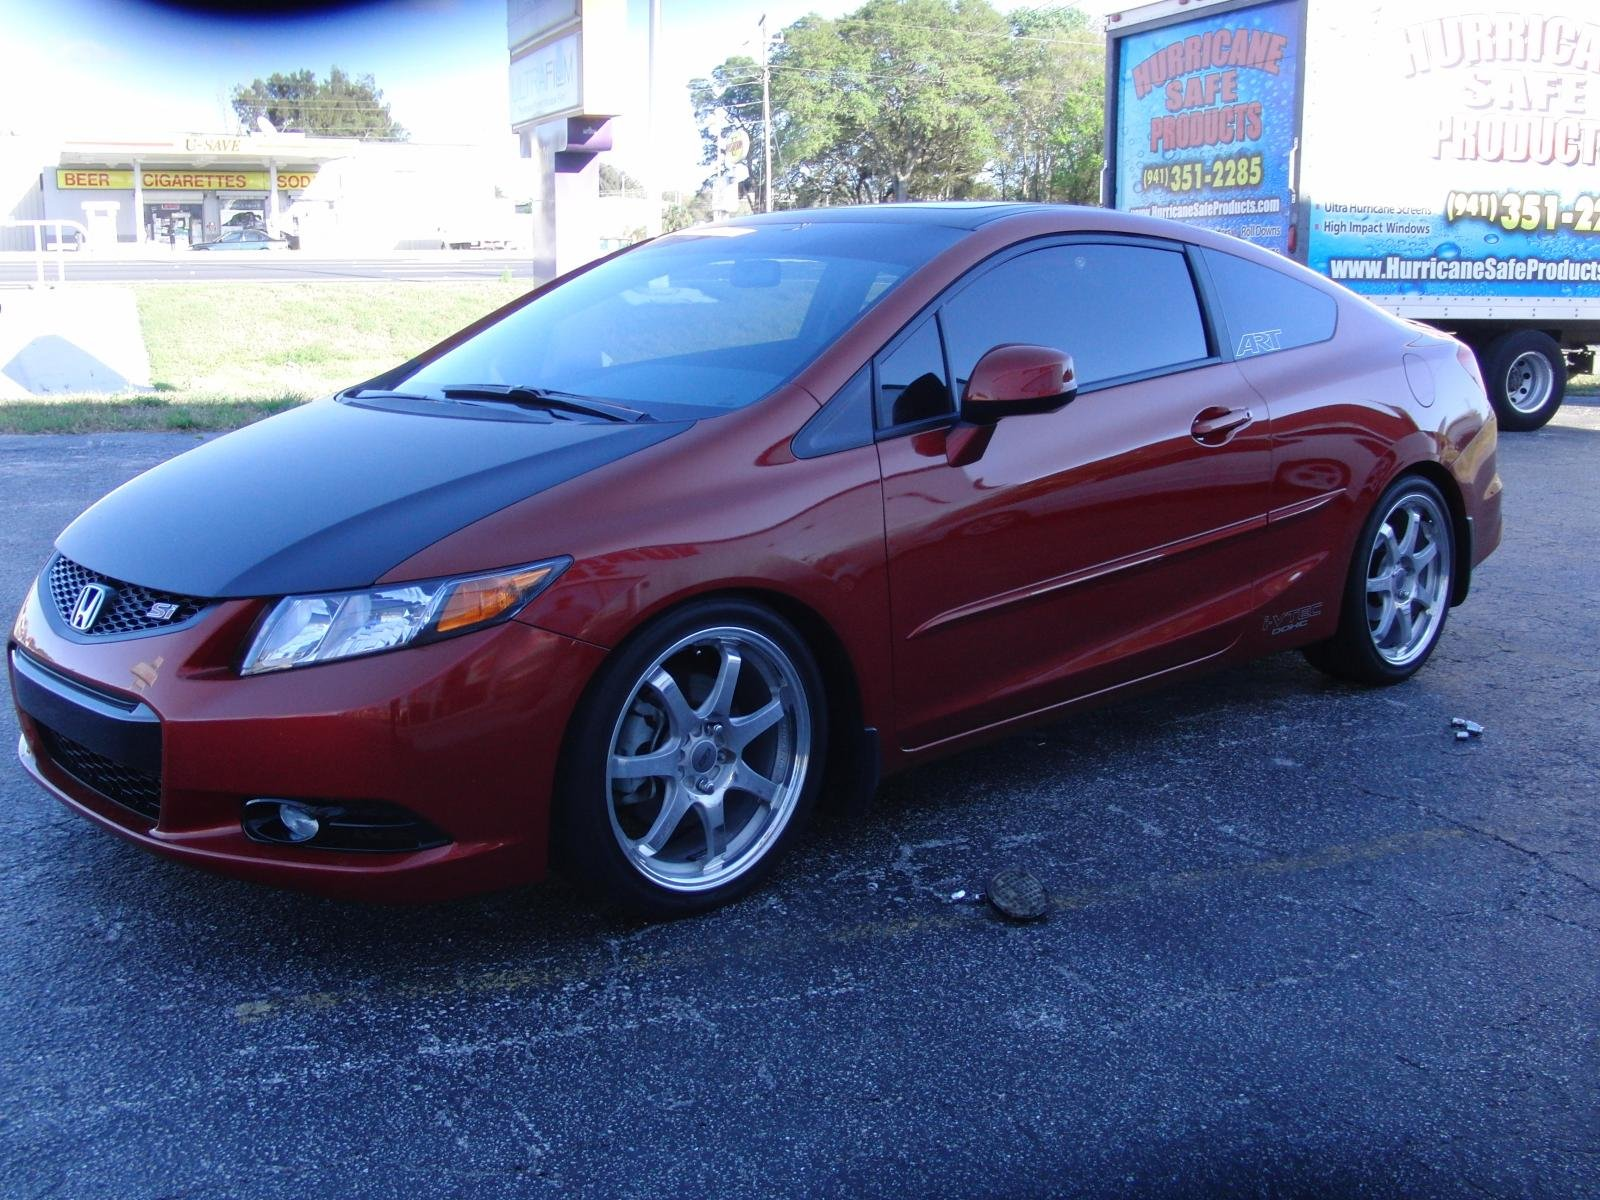 """Mugen GP 18"""" wheels will fit 2012 Civic SI Coupe?"""